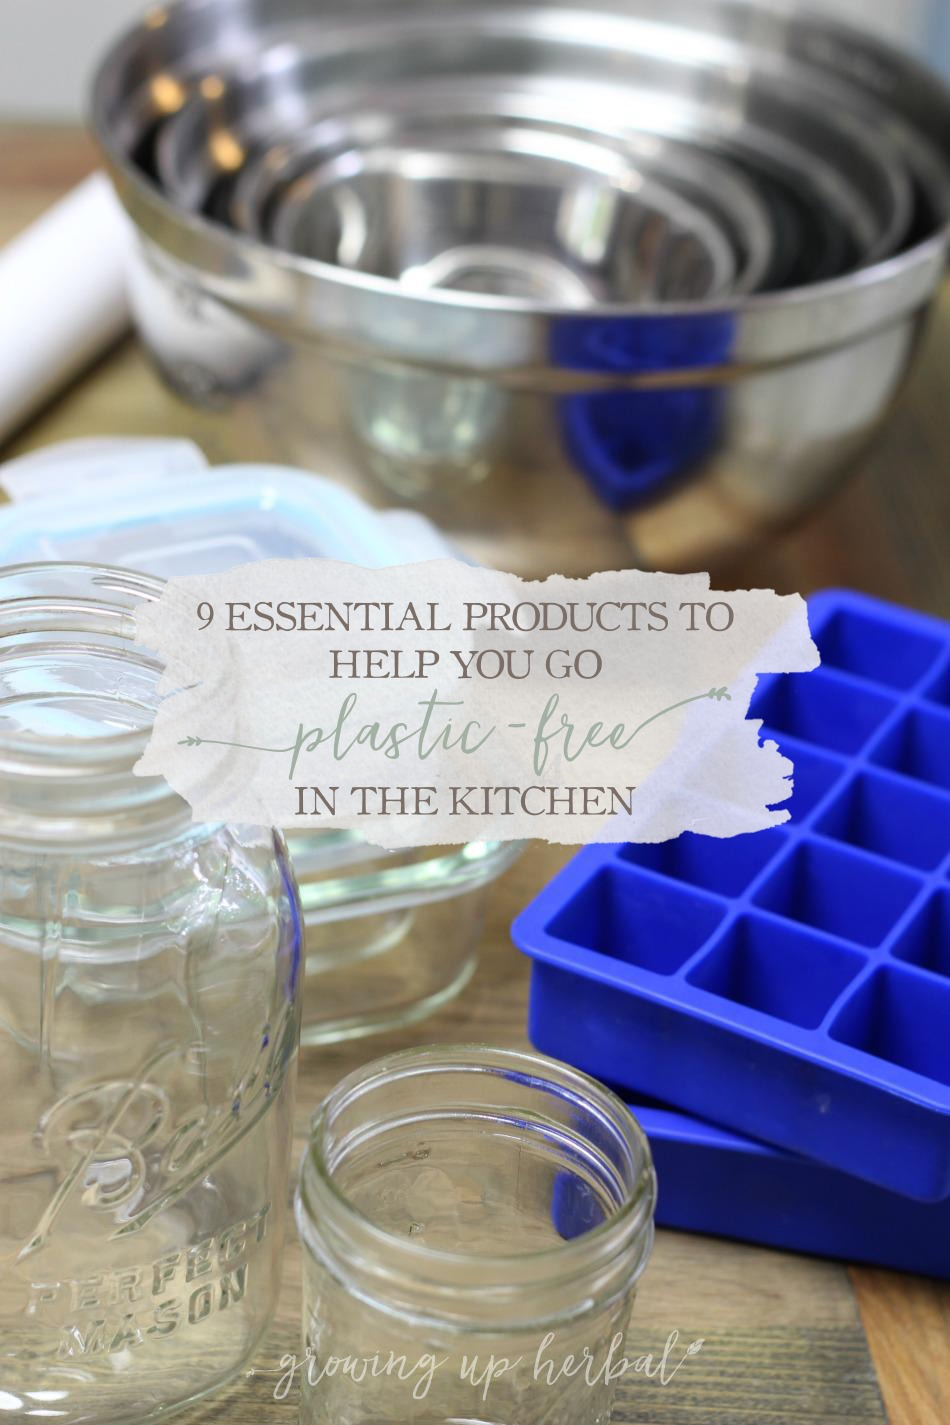 9 Essential Products To Help You Go Plastic-Free In The Kitchen